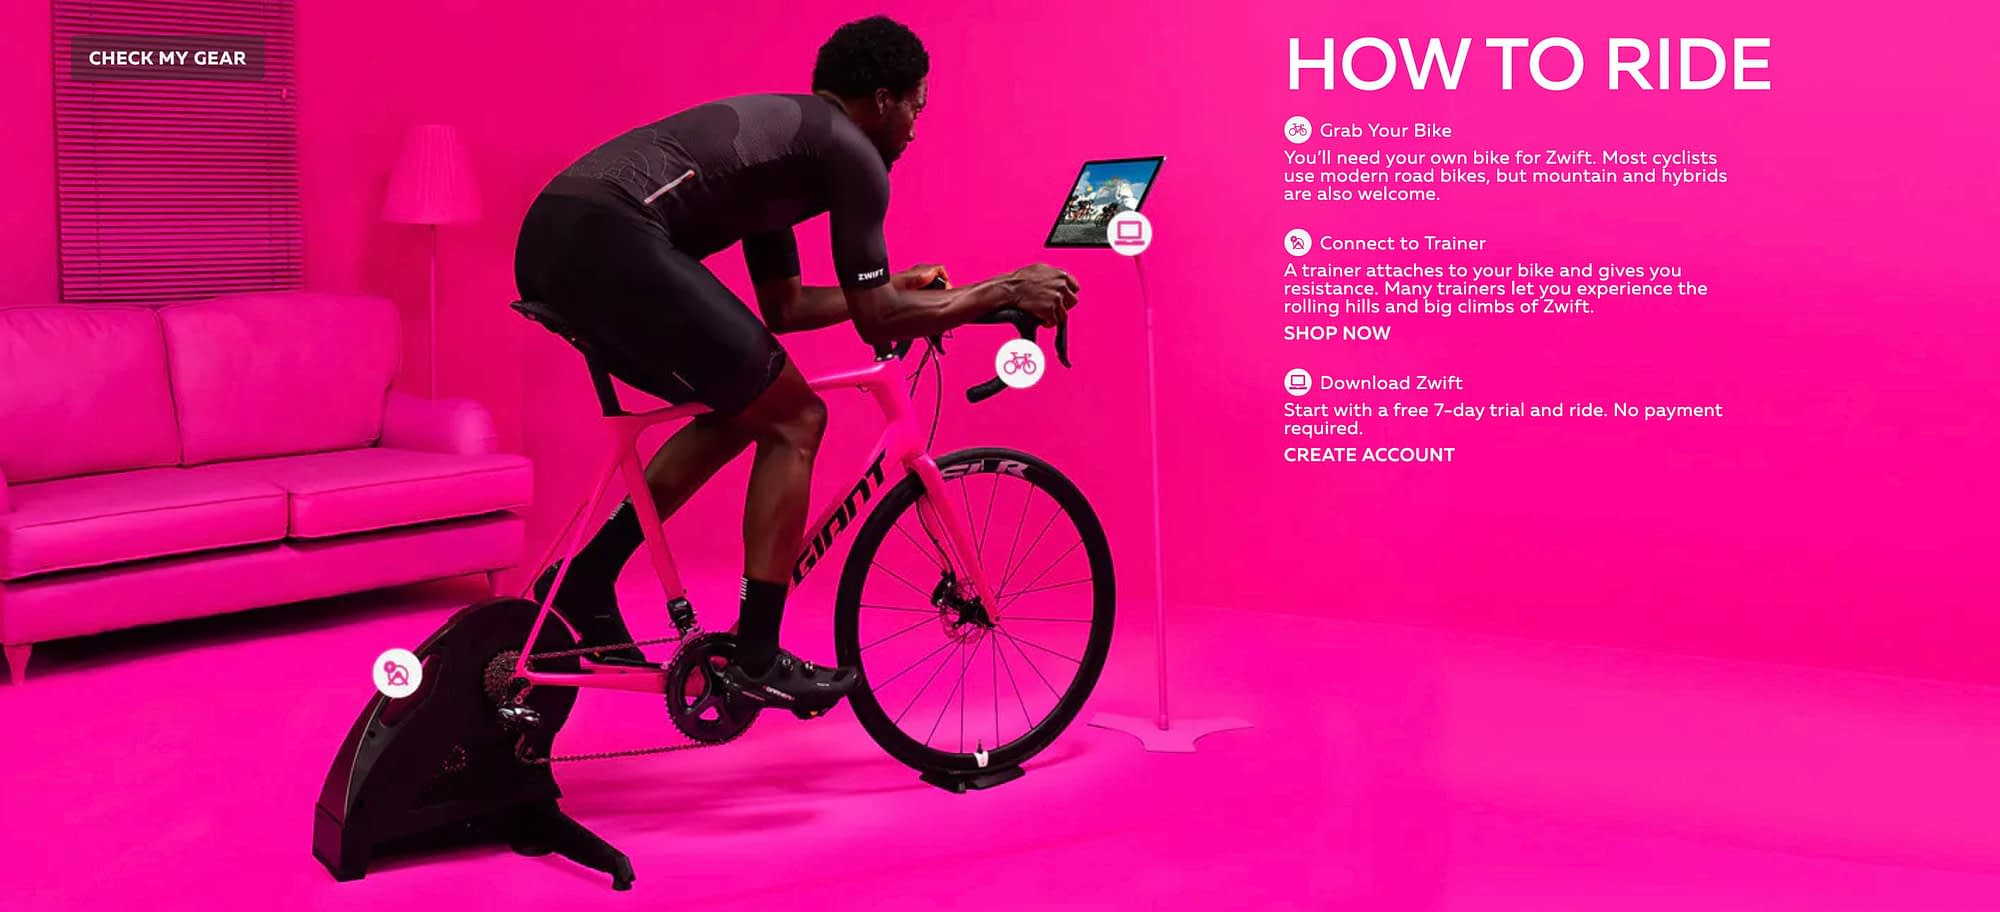 What is Zwift?